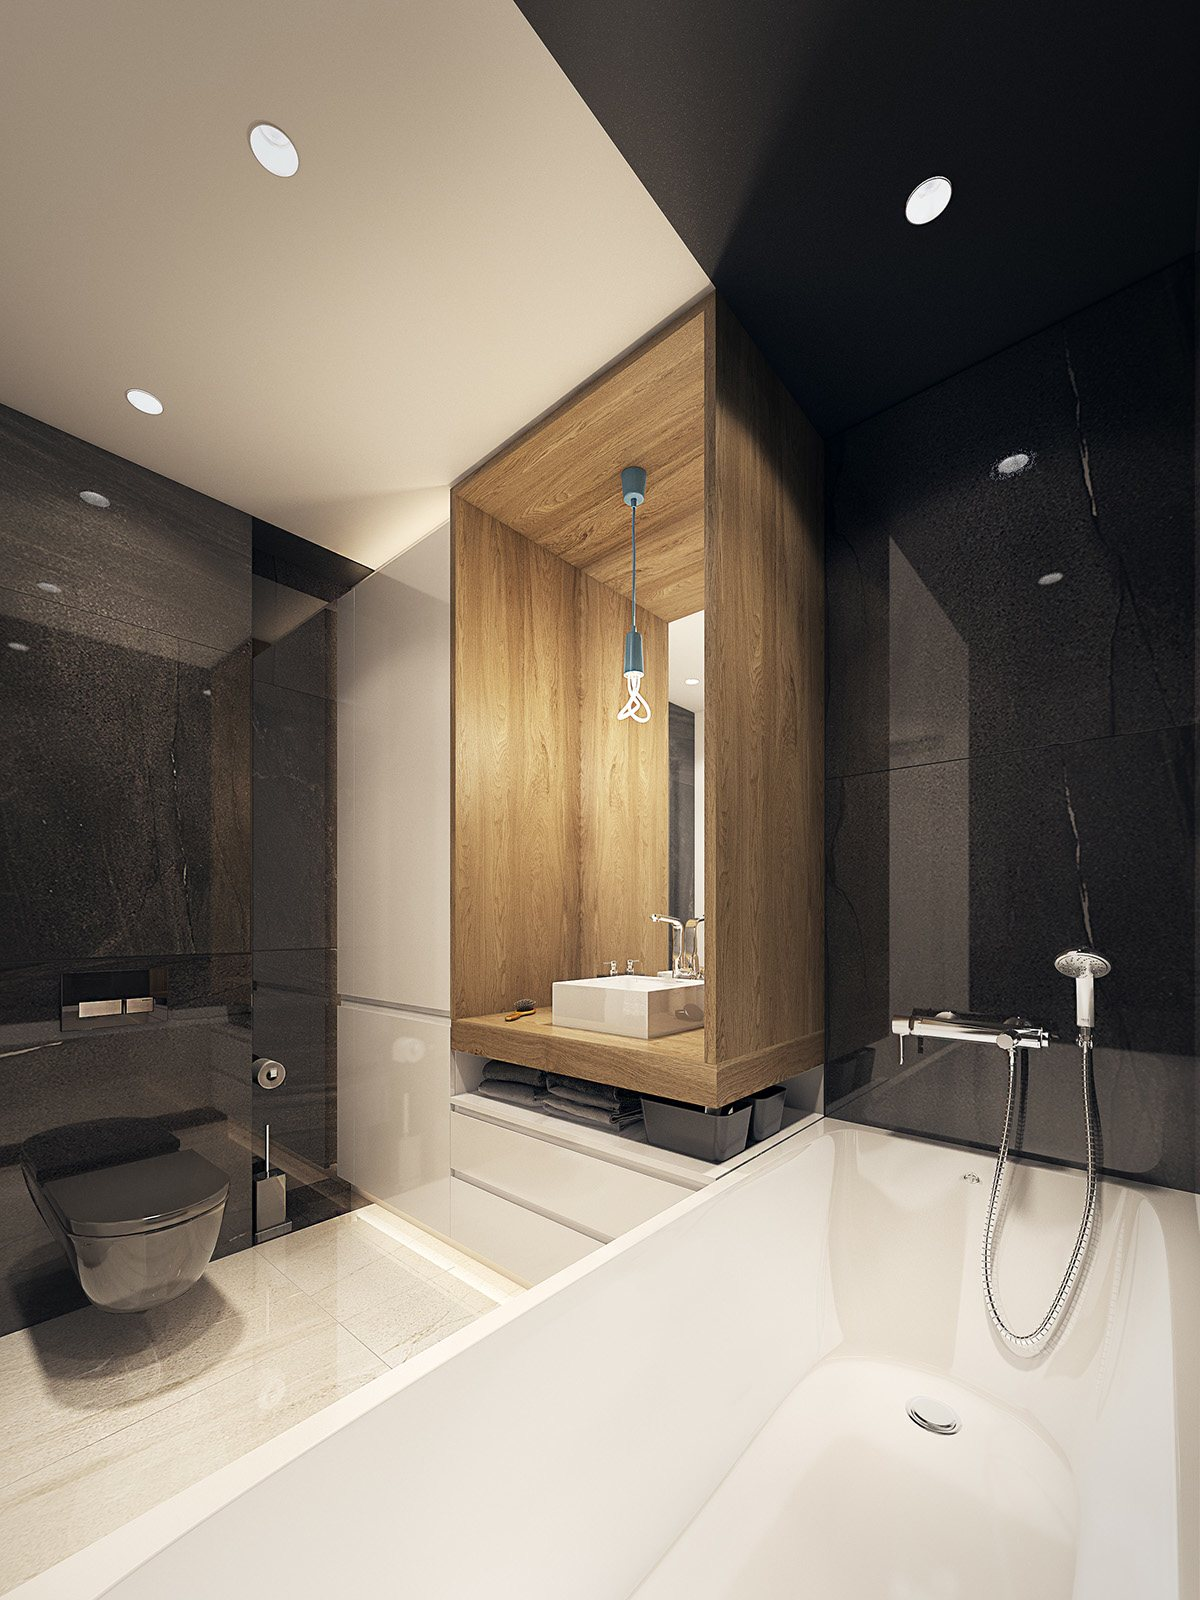 Minimalist Bathroom Designs Looks So Trendy With